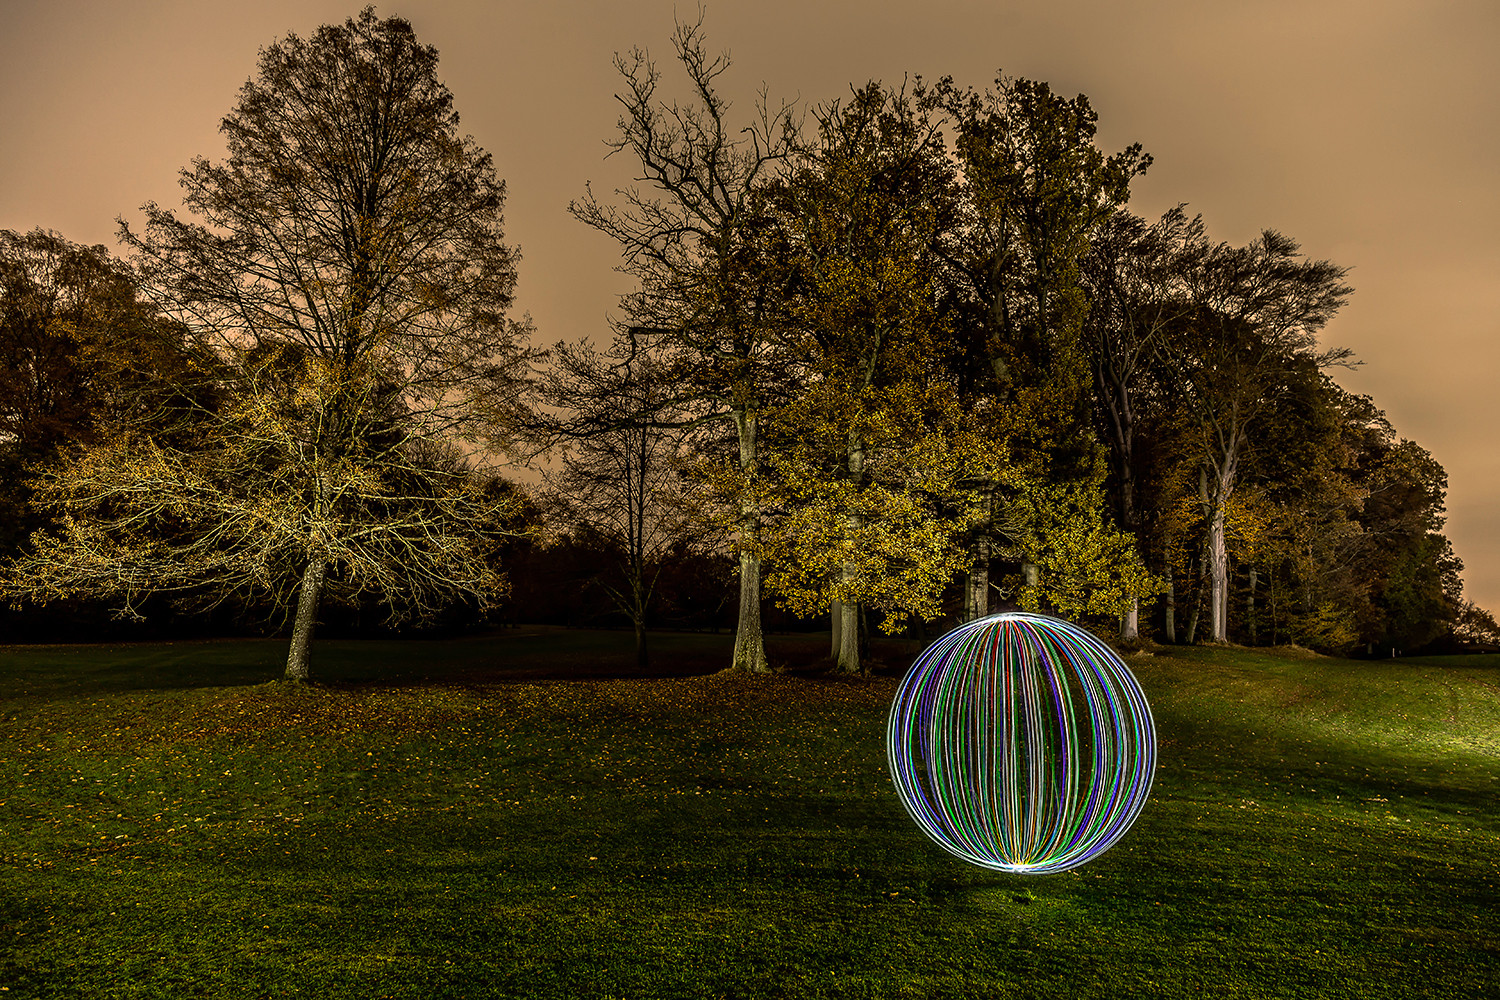 Electrical Movements in the Dark #241 - Autumn Mood (2)